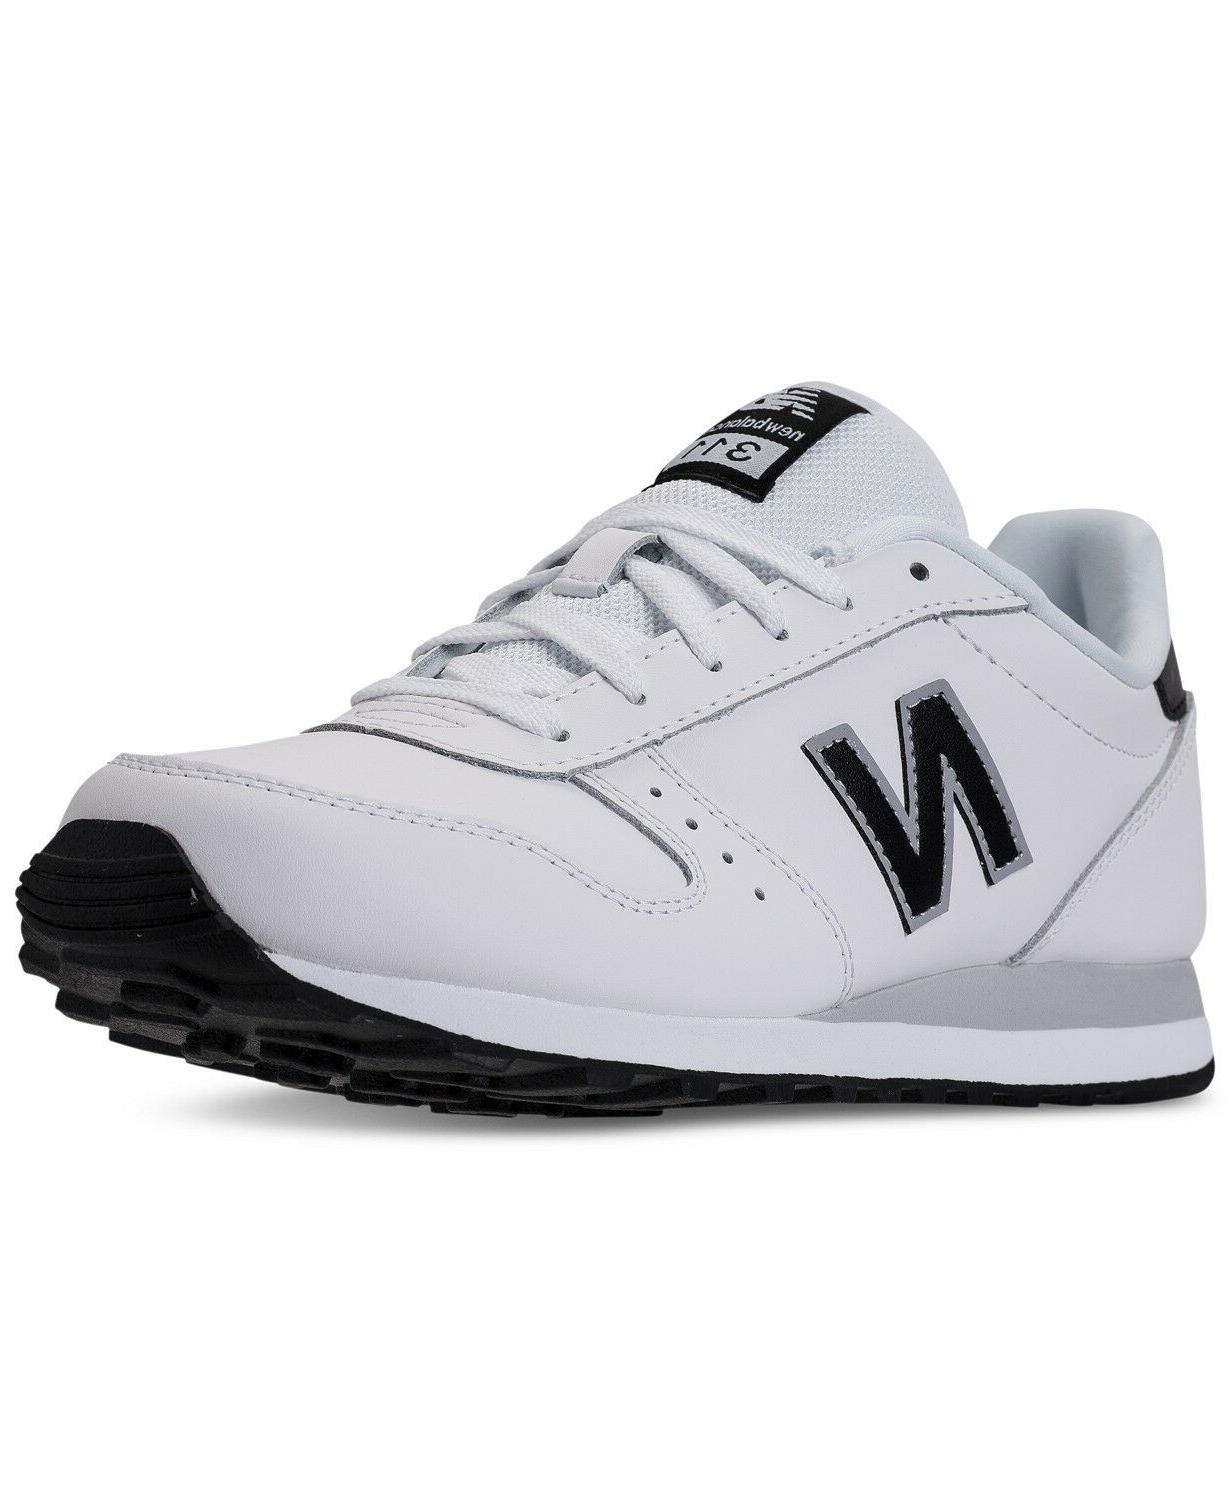 new mens 311 leather casual sneakers in